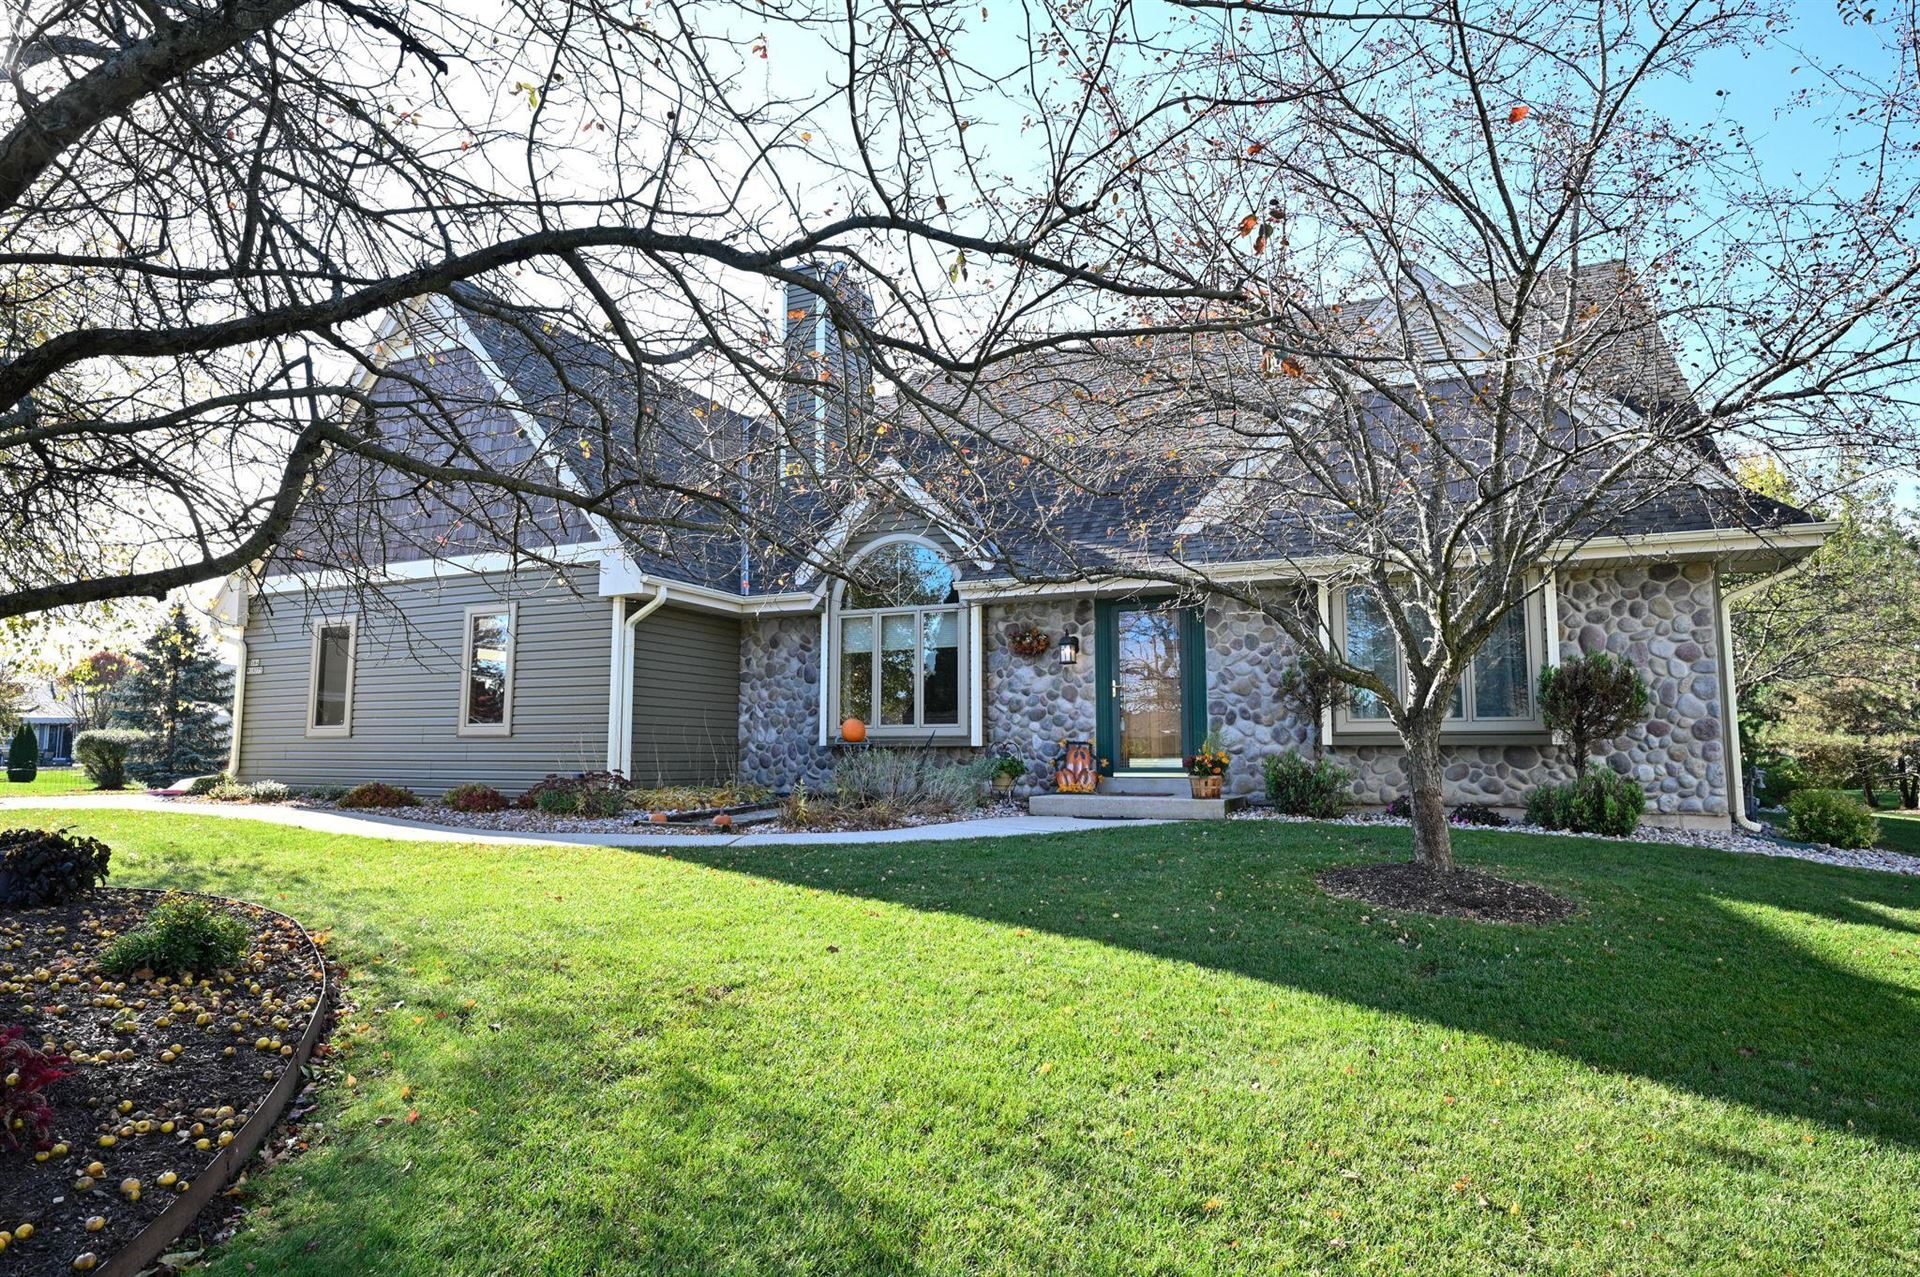 S84W19775 Loveland Ct, Muskego, WI 53150 - #: 1715245